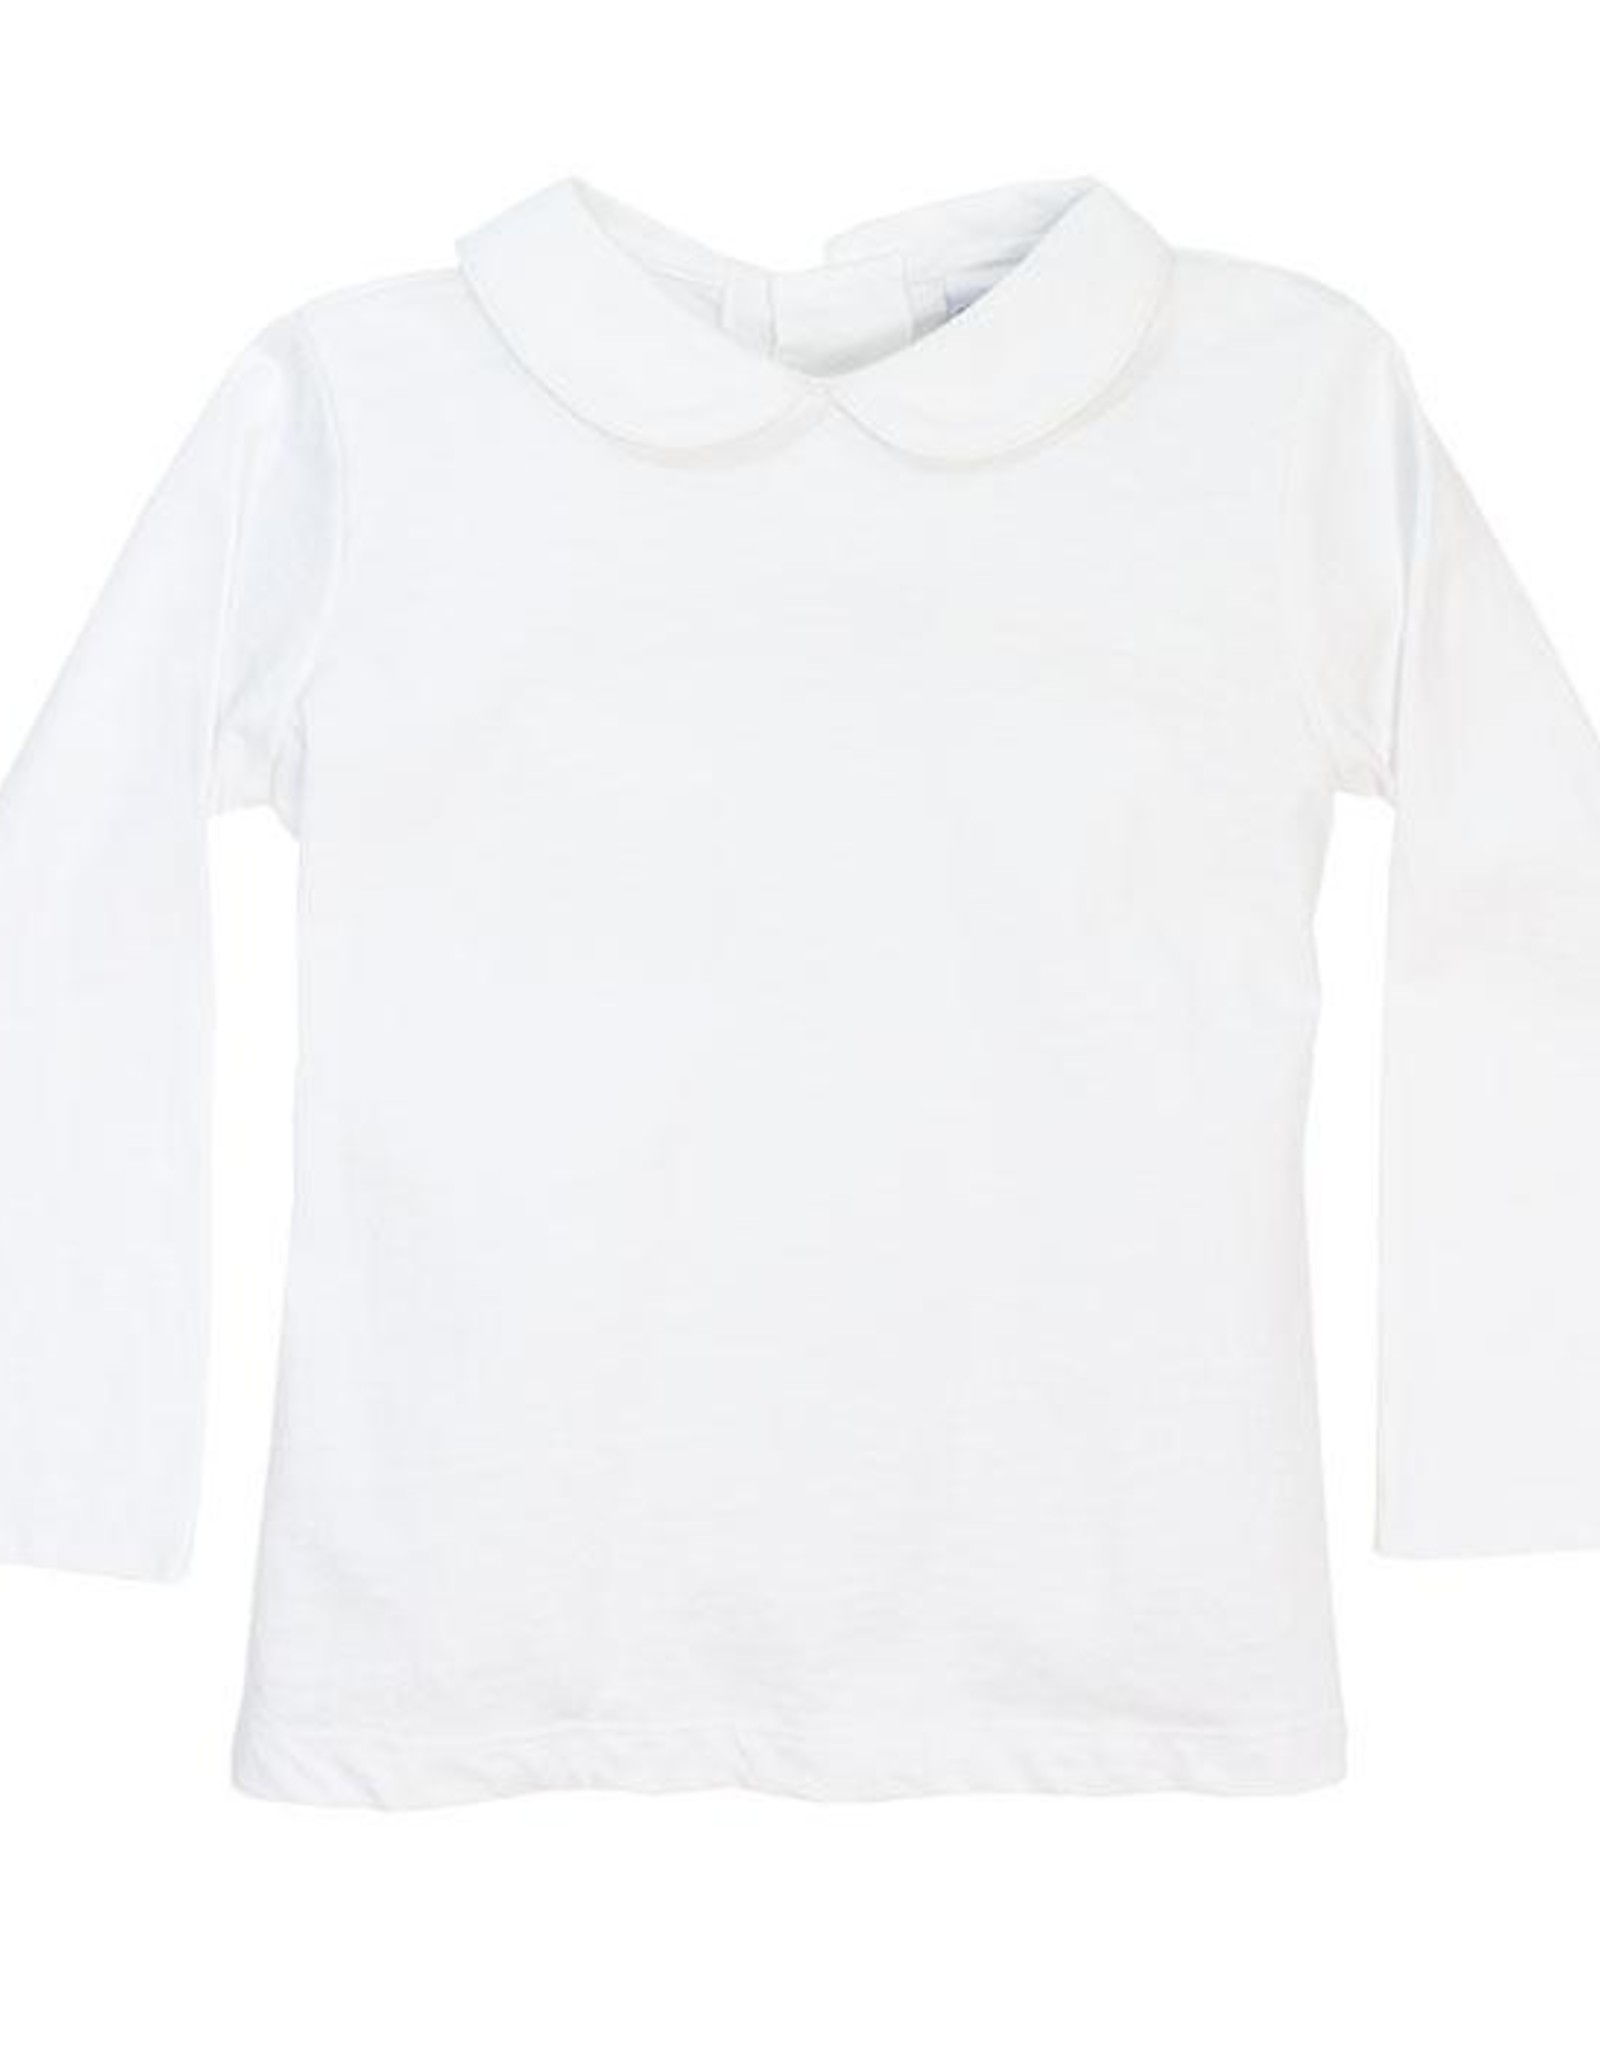 The Bailey Boys White Knit Piped Shirt